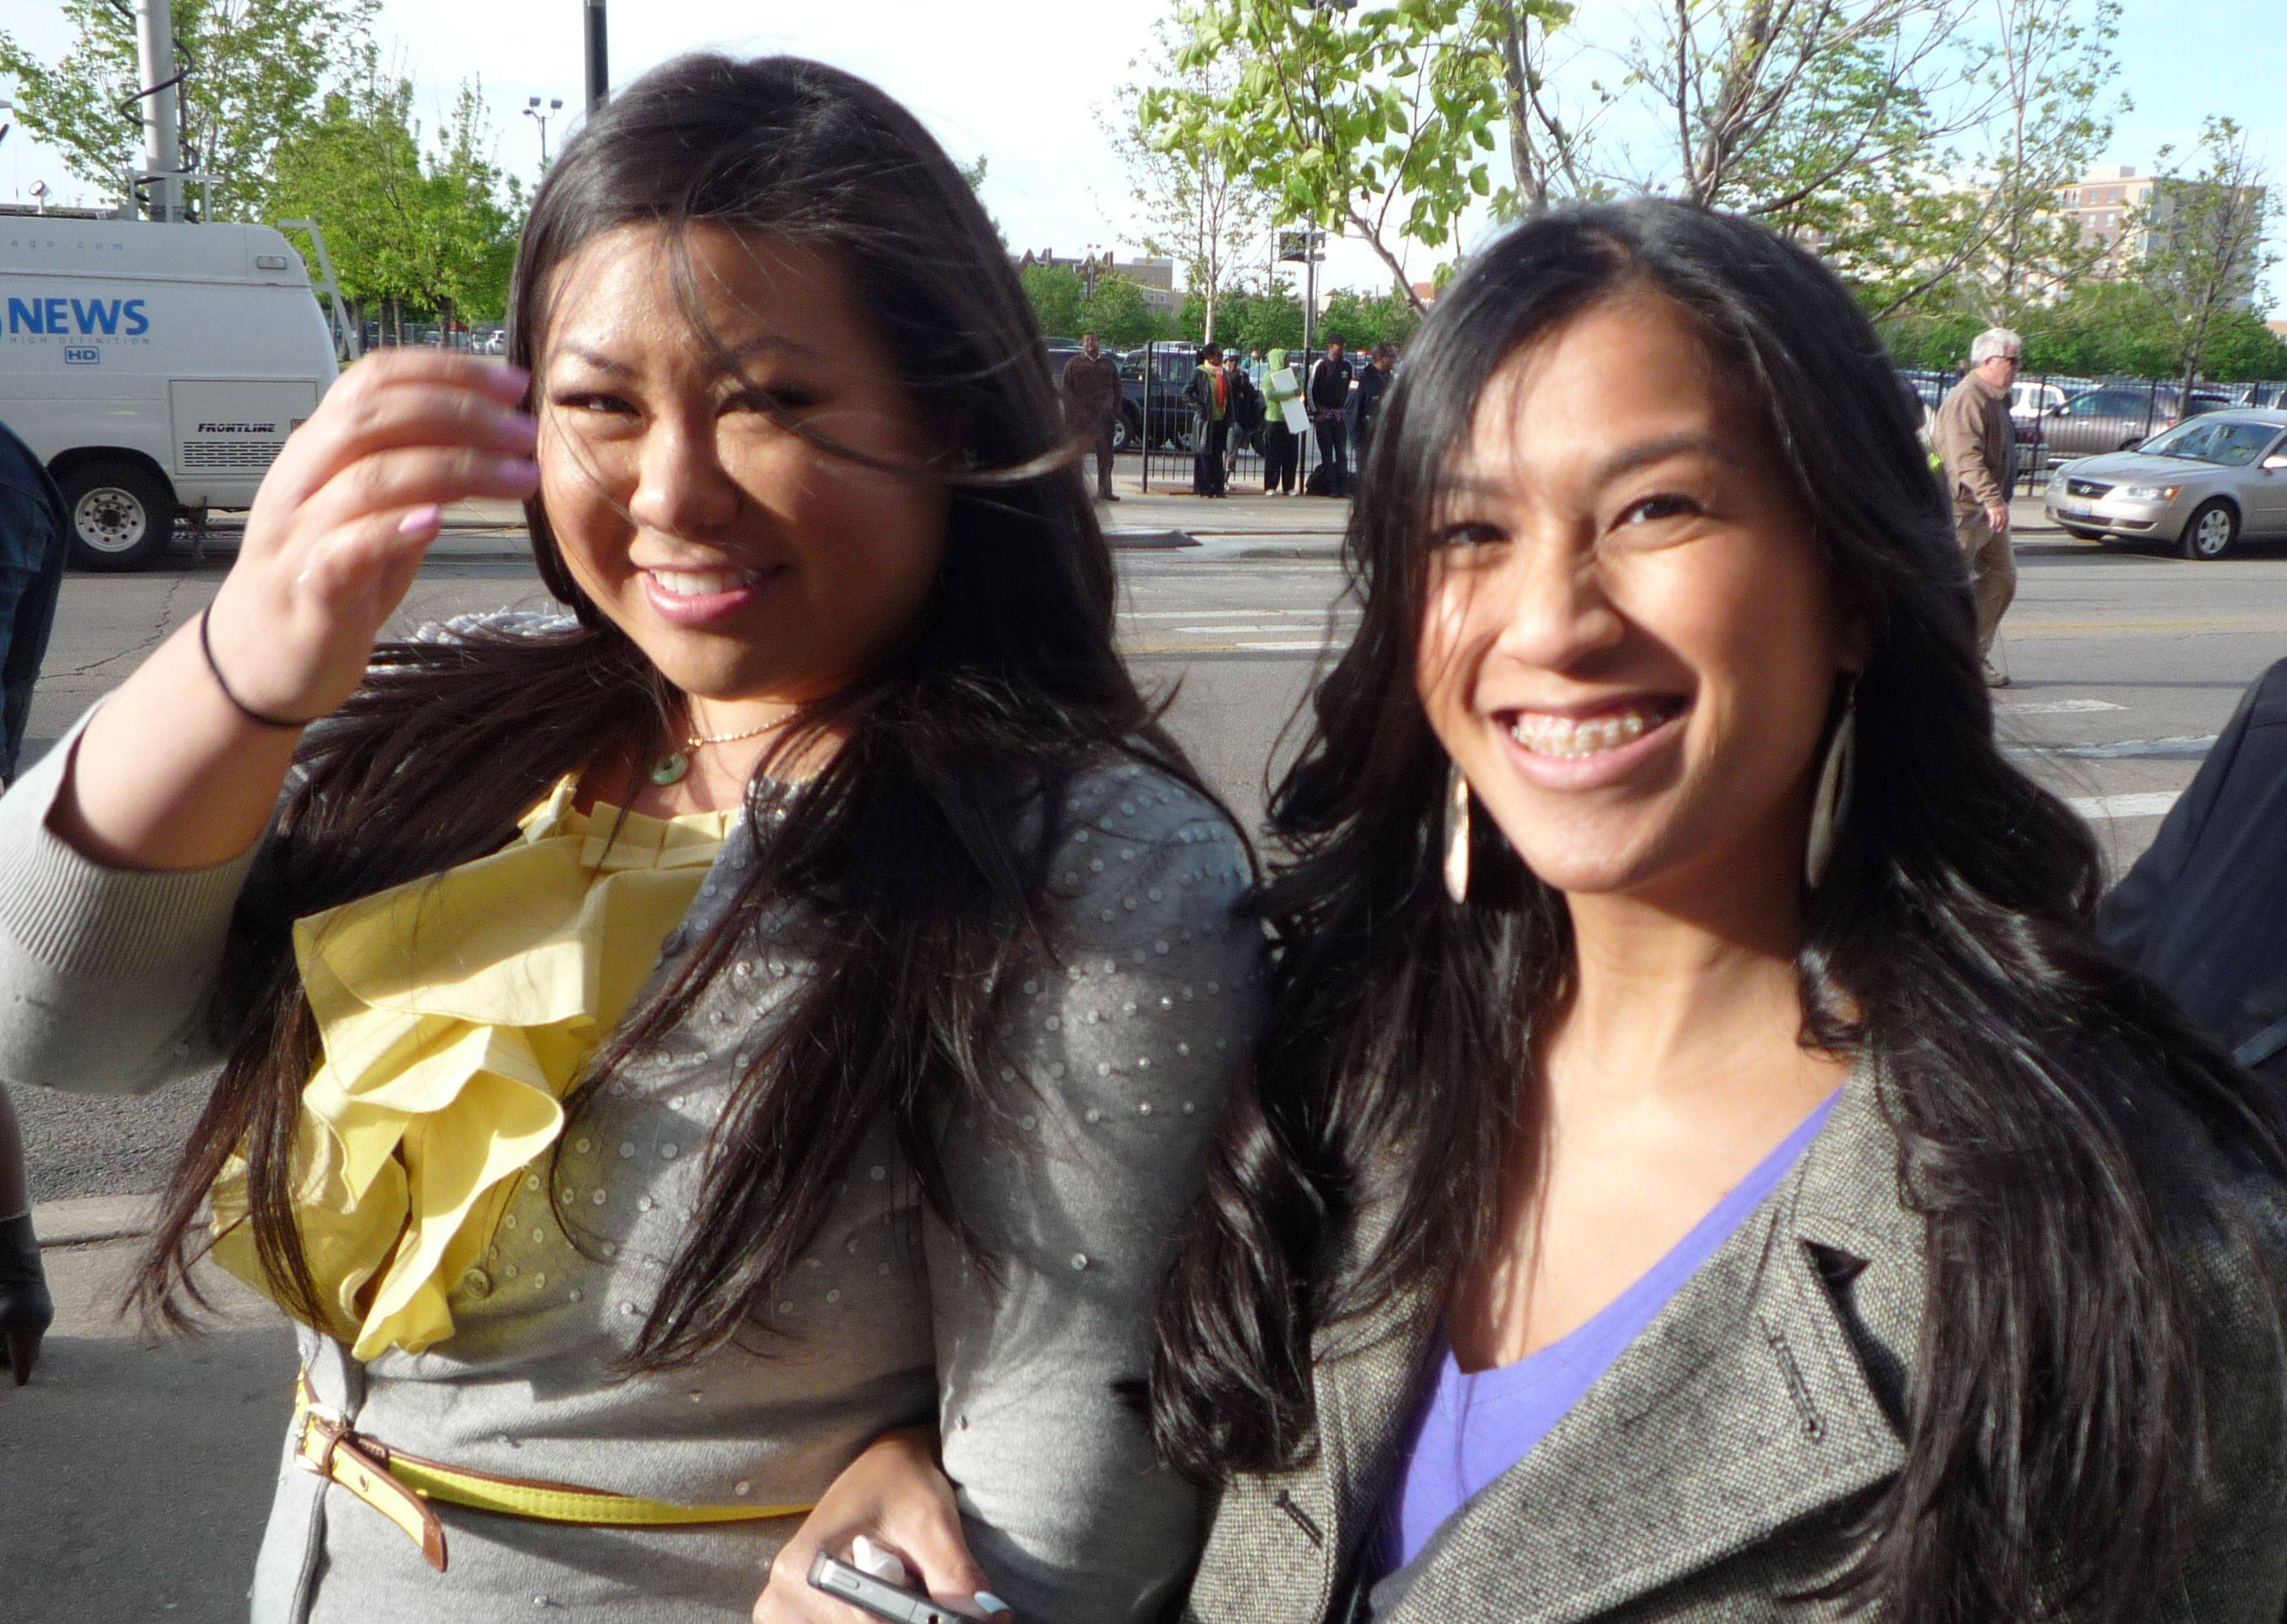 Tran Nguyen, left, 26, of Chicago and Angela Niu-Diep, 26, of Palatine